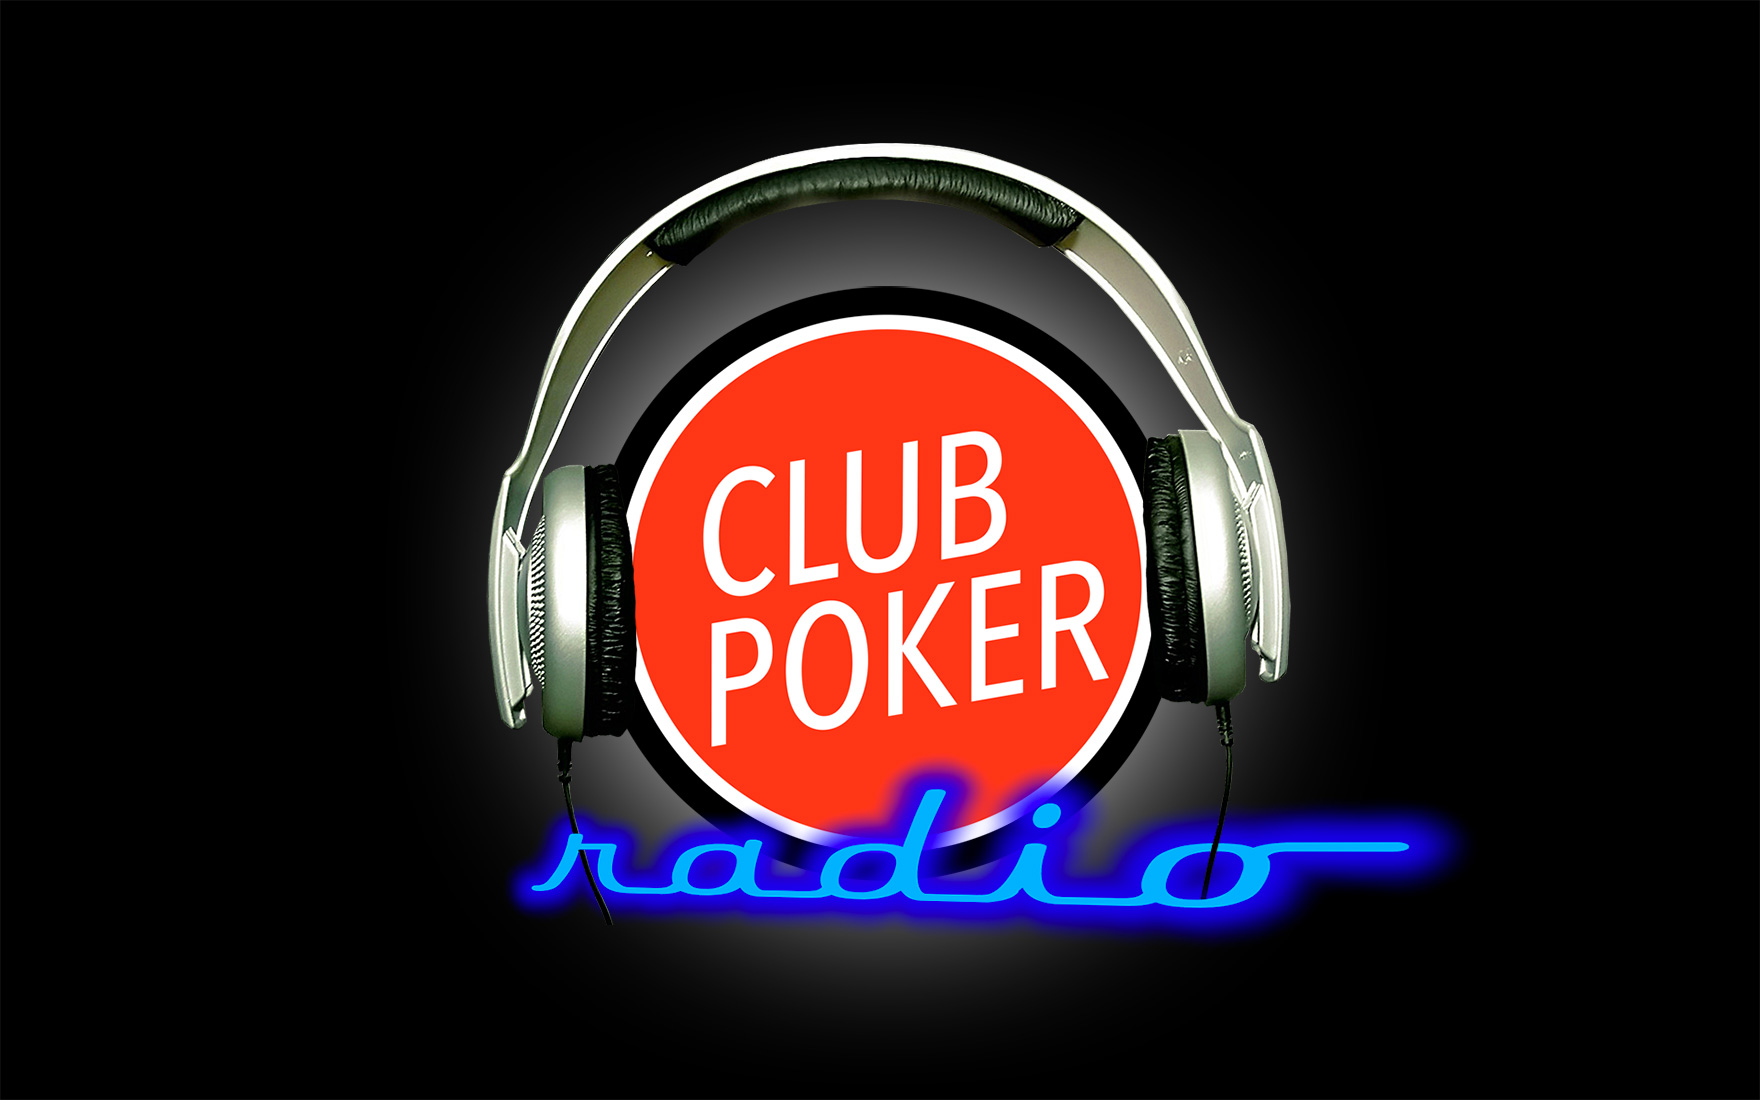 logos club poker logos et fonds d 39 cran club poker. Black Bedroom Furniture Sets. Home Design Ideas